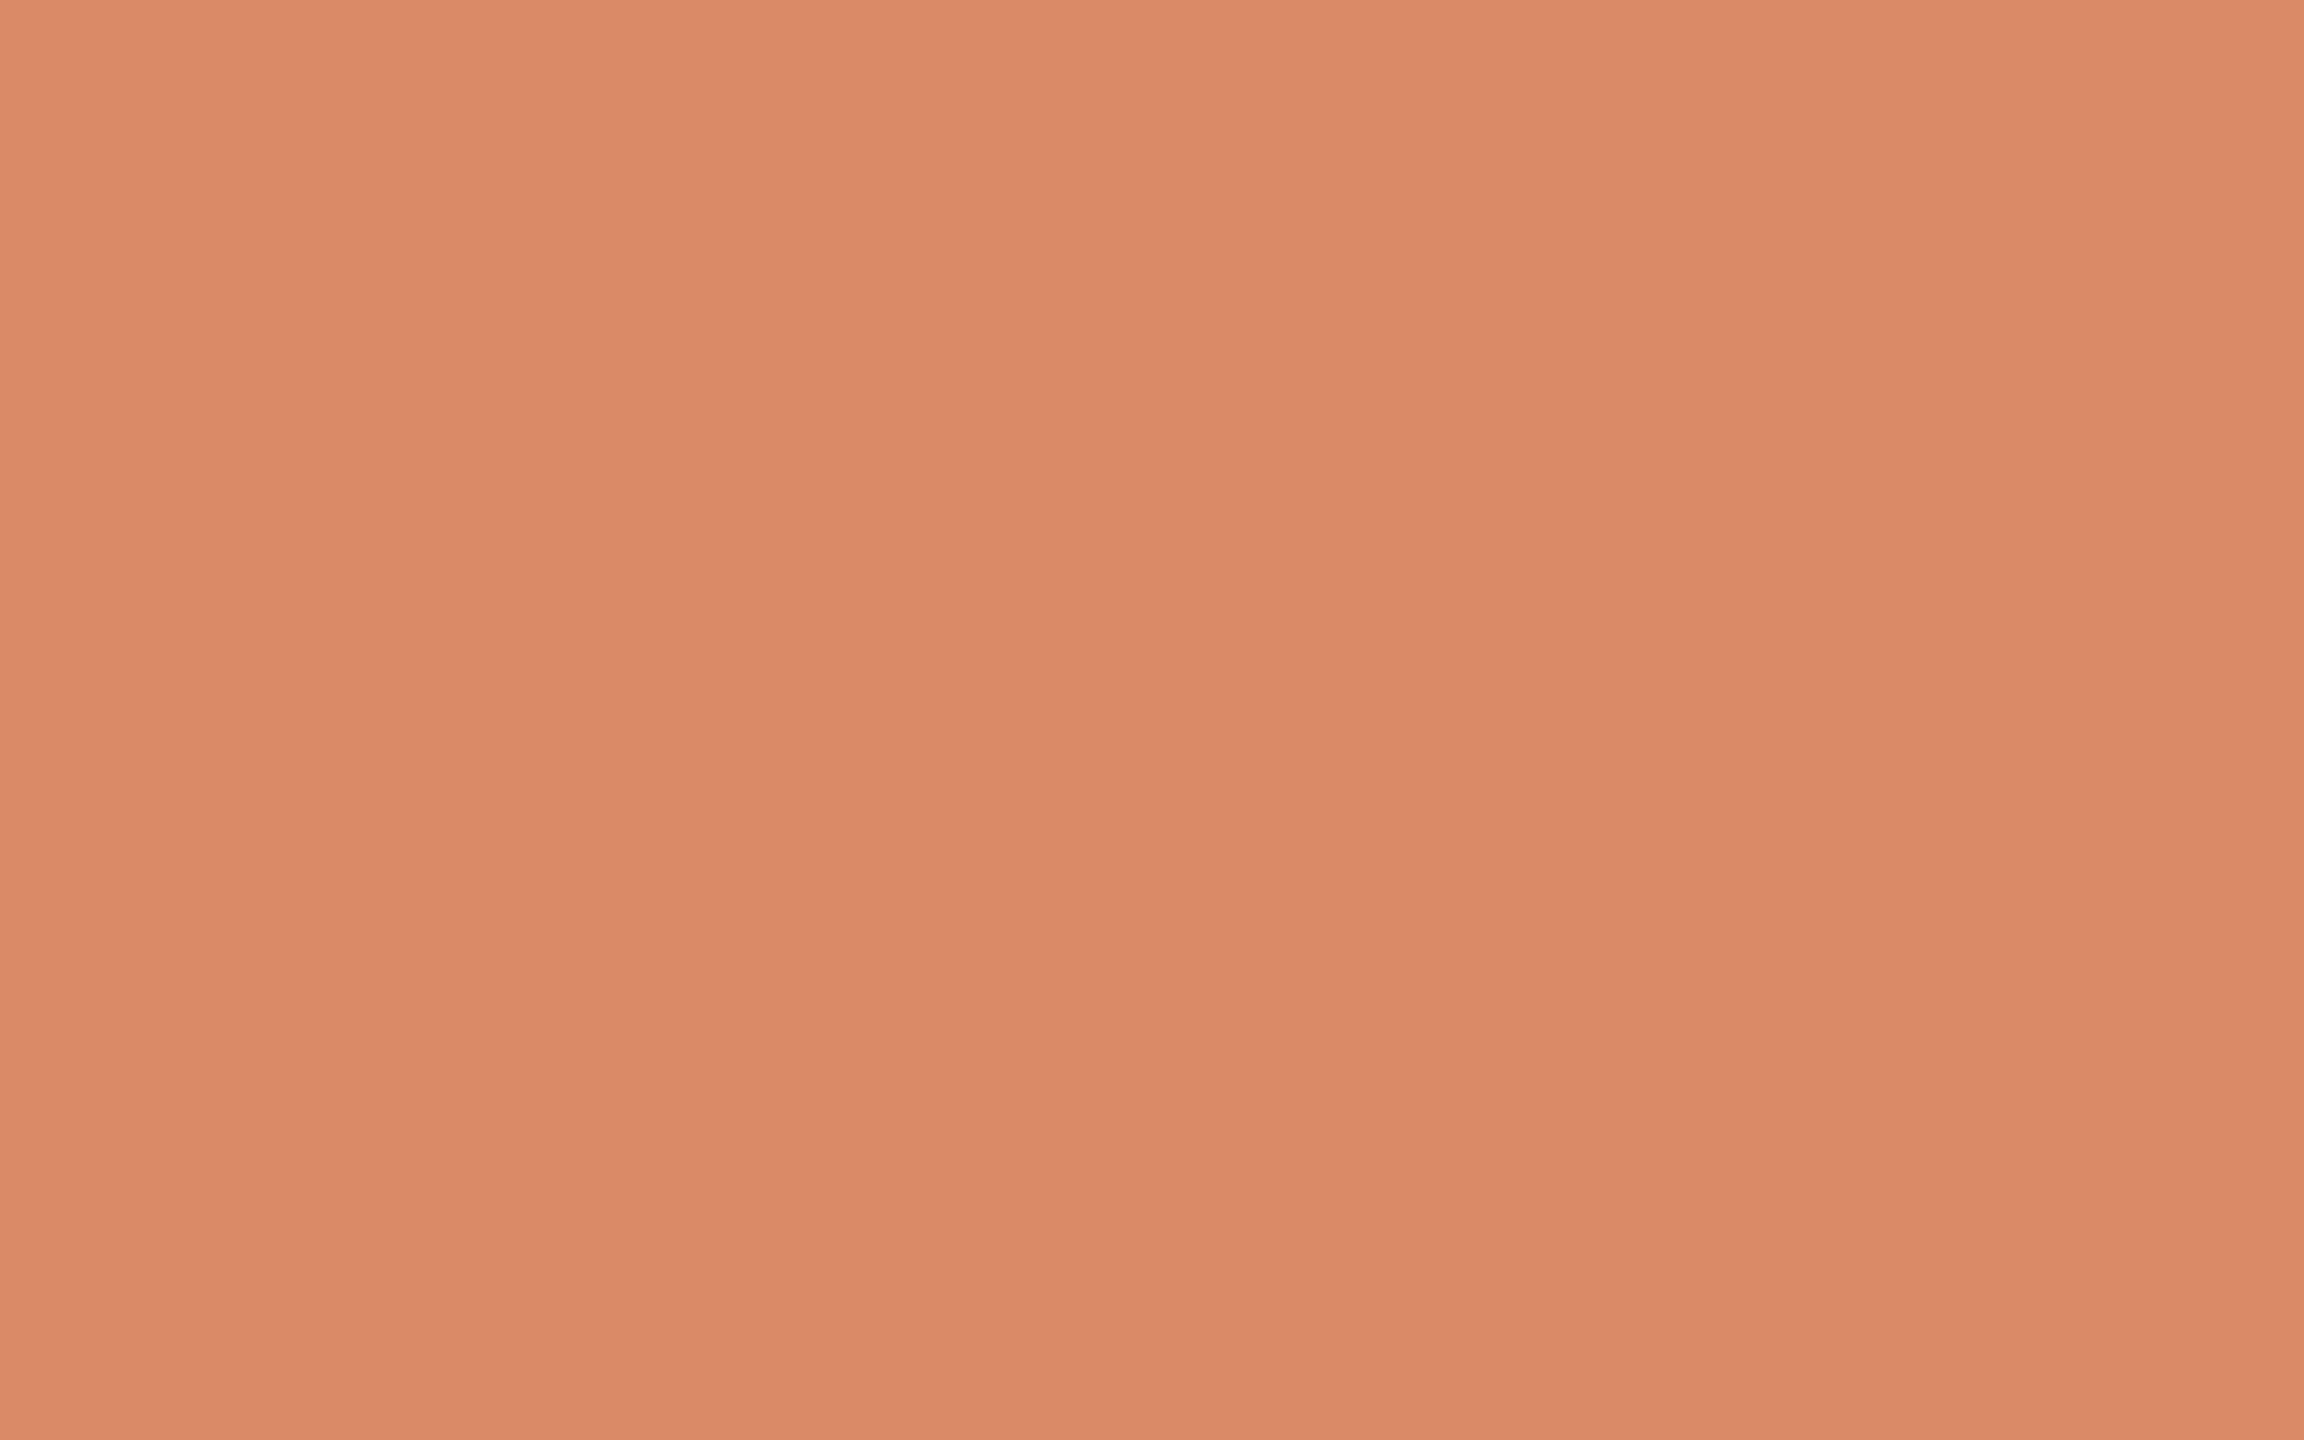 2304x1440 Pale Copper Solid Color Background